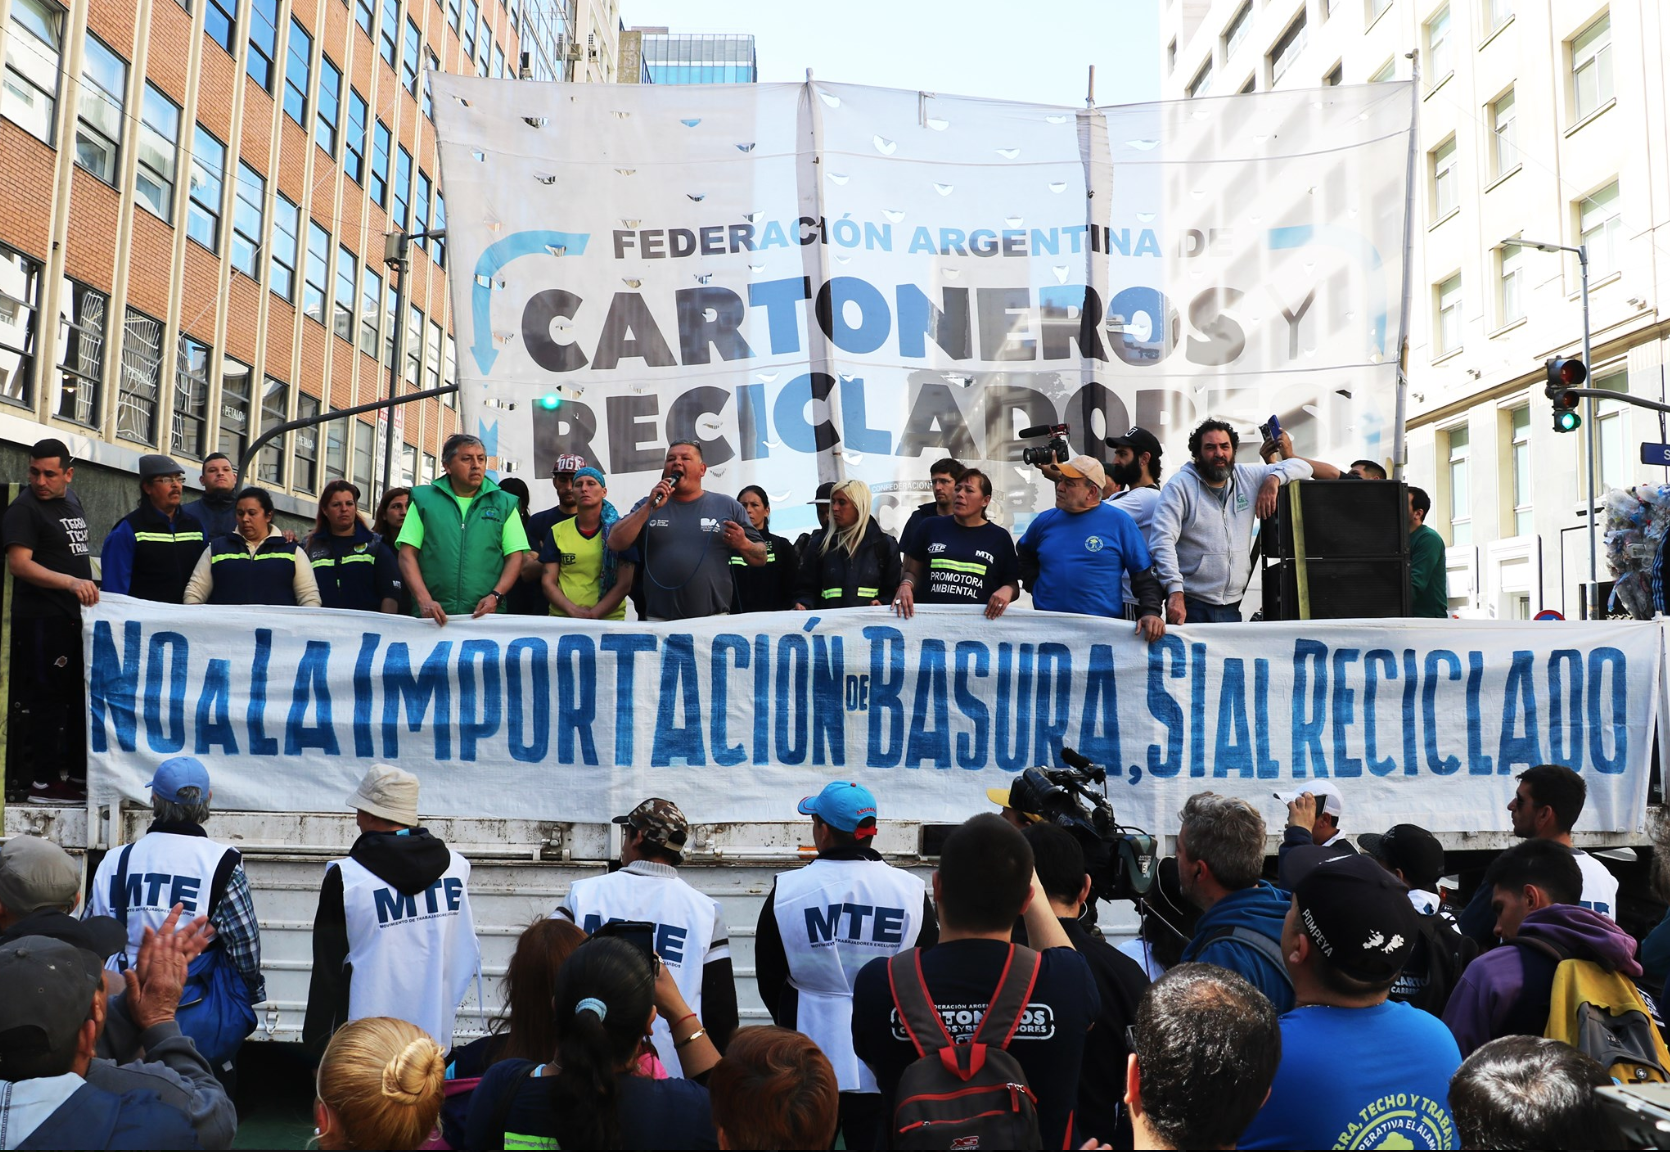 Protest by the Argentine Federation of Cartoneros, Carreros y Recyladores (FACCyR) against new Decree that changes the definition of waste to allow more imports of wastes into Argentina. Decree is illegal under Basel Convention to which Argentina is a party. September 2019. Copyright FACCyR.